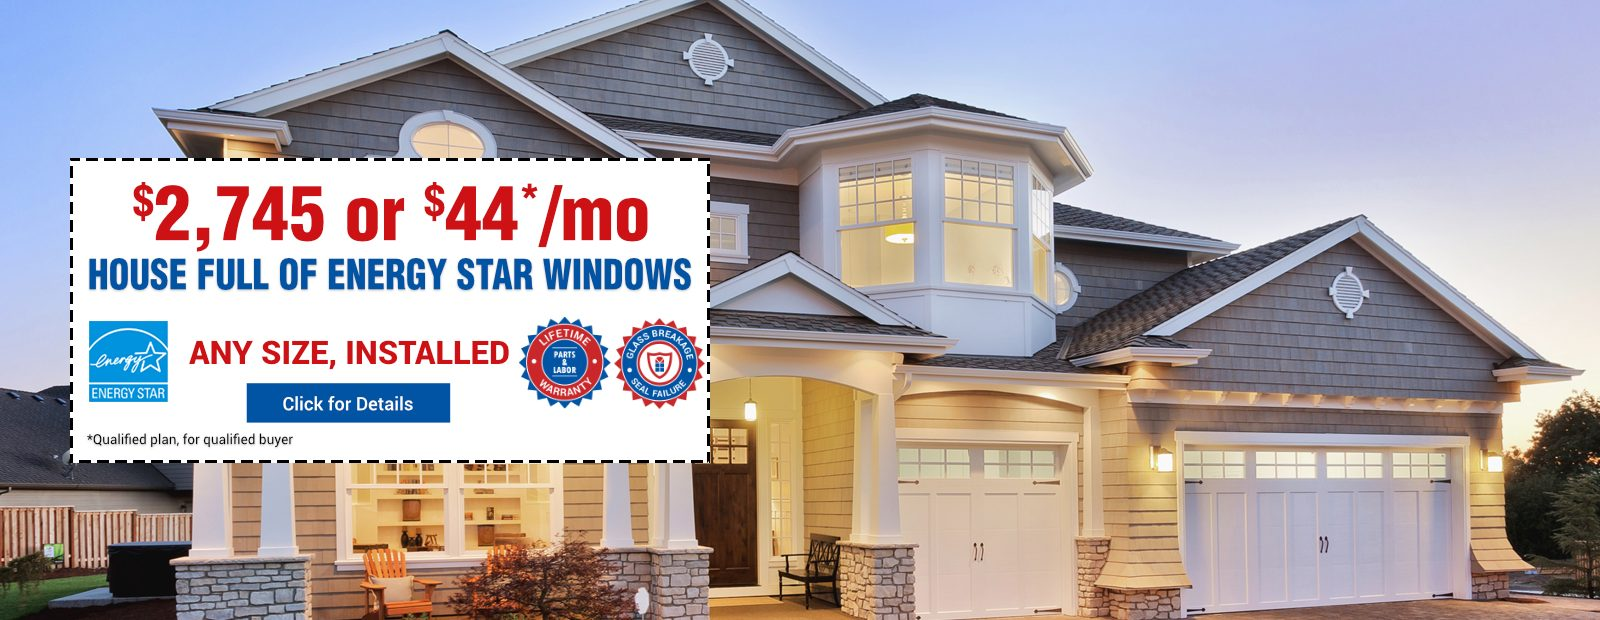 Energy Star Windows Warwick NY